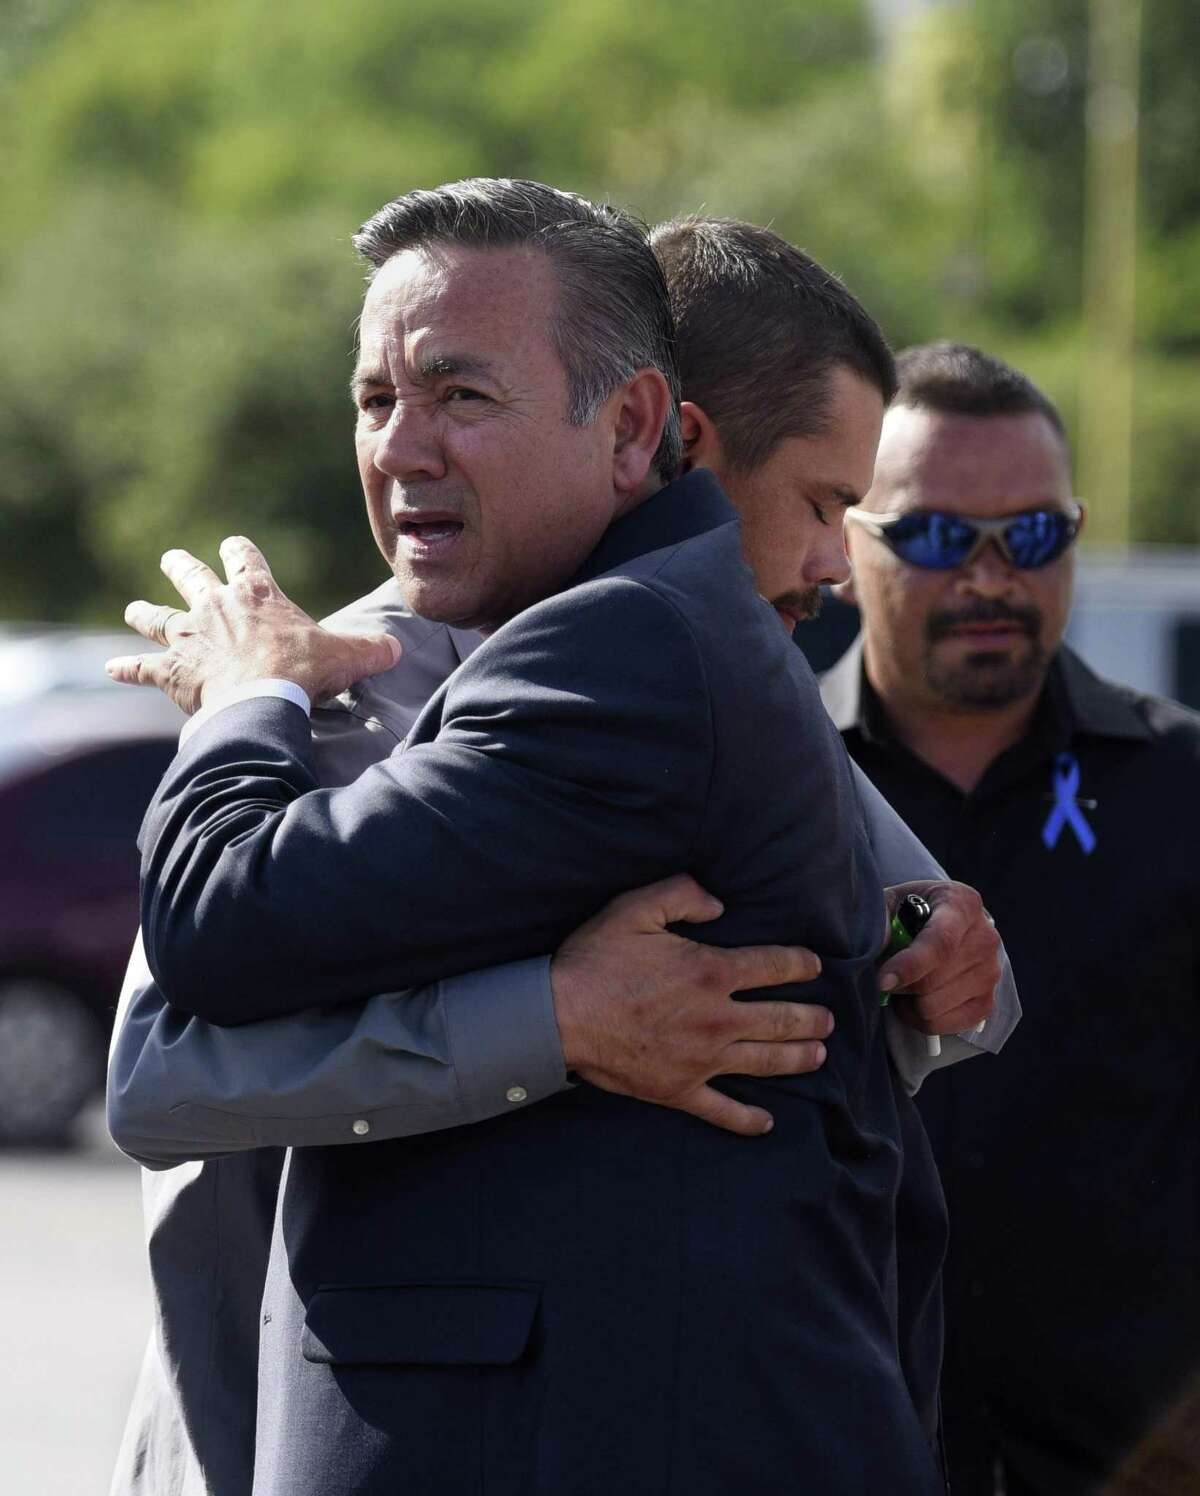 State Sen. Carlos Uresti is embraced by a supporter after leaving the San Antonio federal courthouse after being sentenced for his criminal conviction in the FourWinds Logistics case on Tuesday, June 26, 2018.